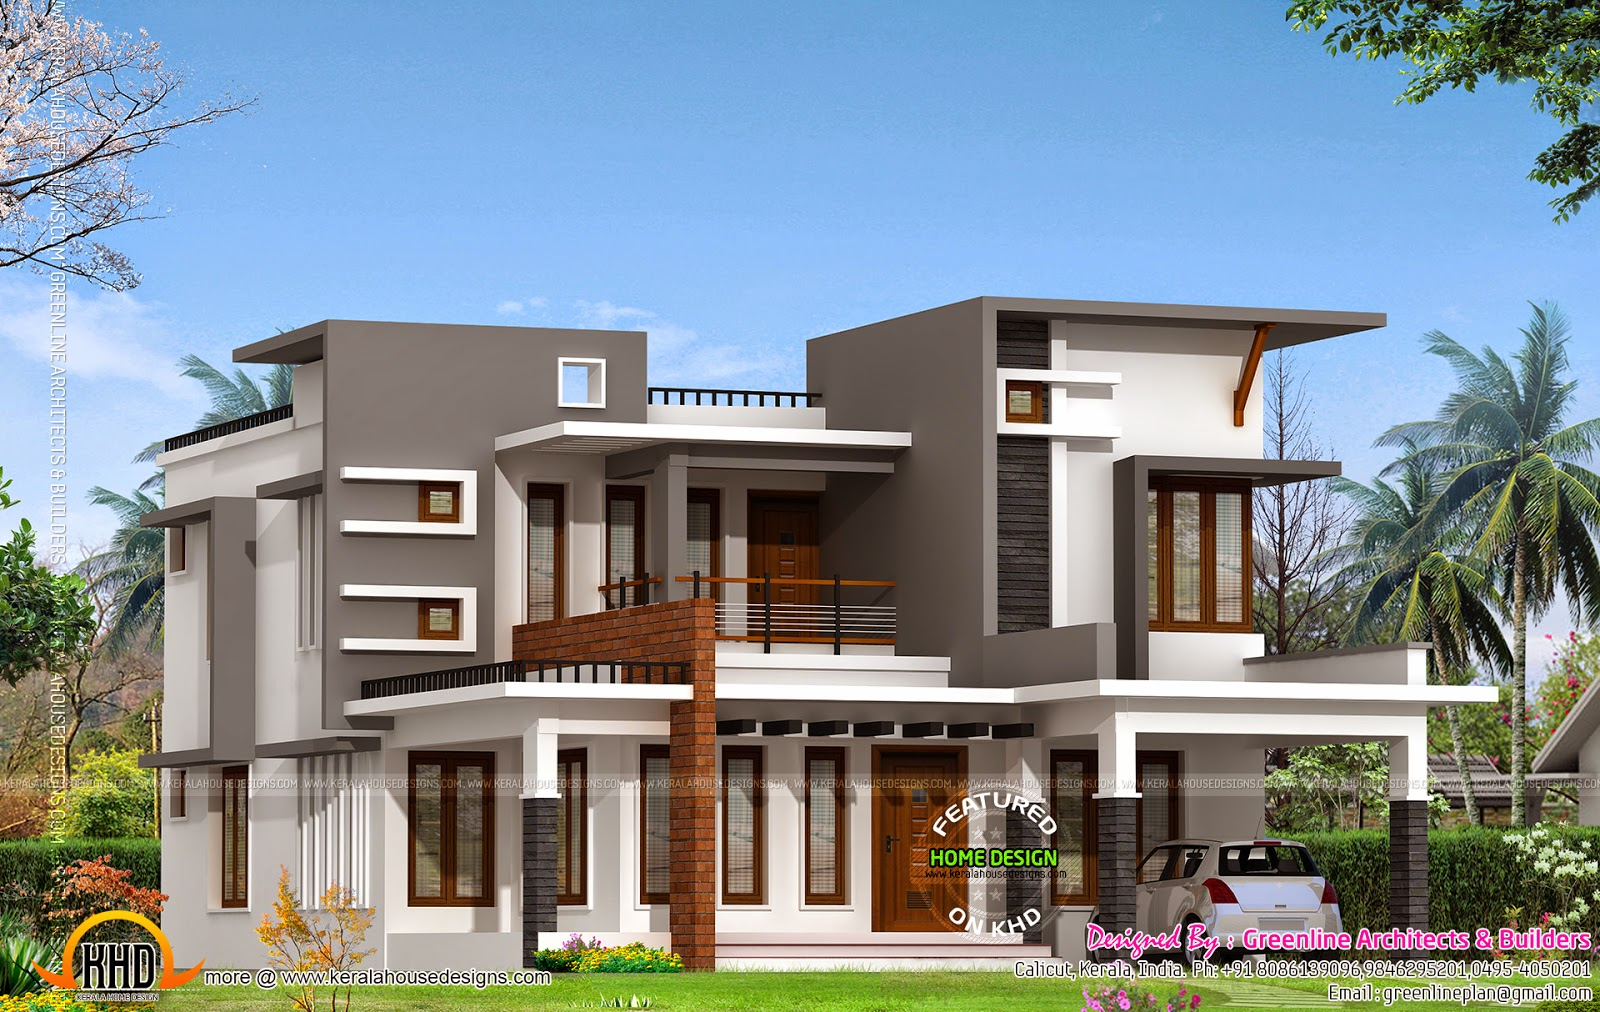 Contemporary house with estimate cost 28 lakhs kerala for Home designs kerala architects